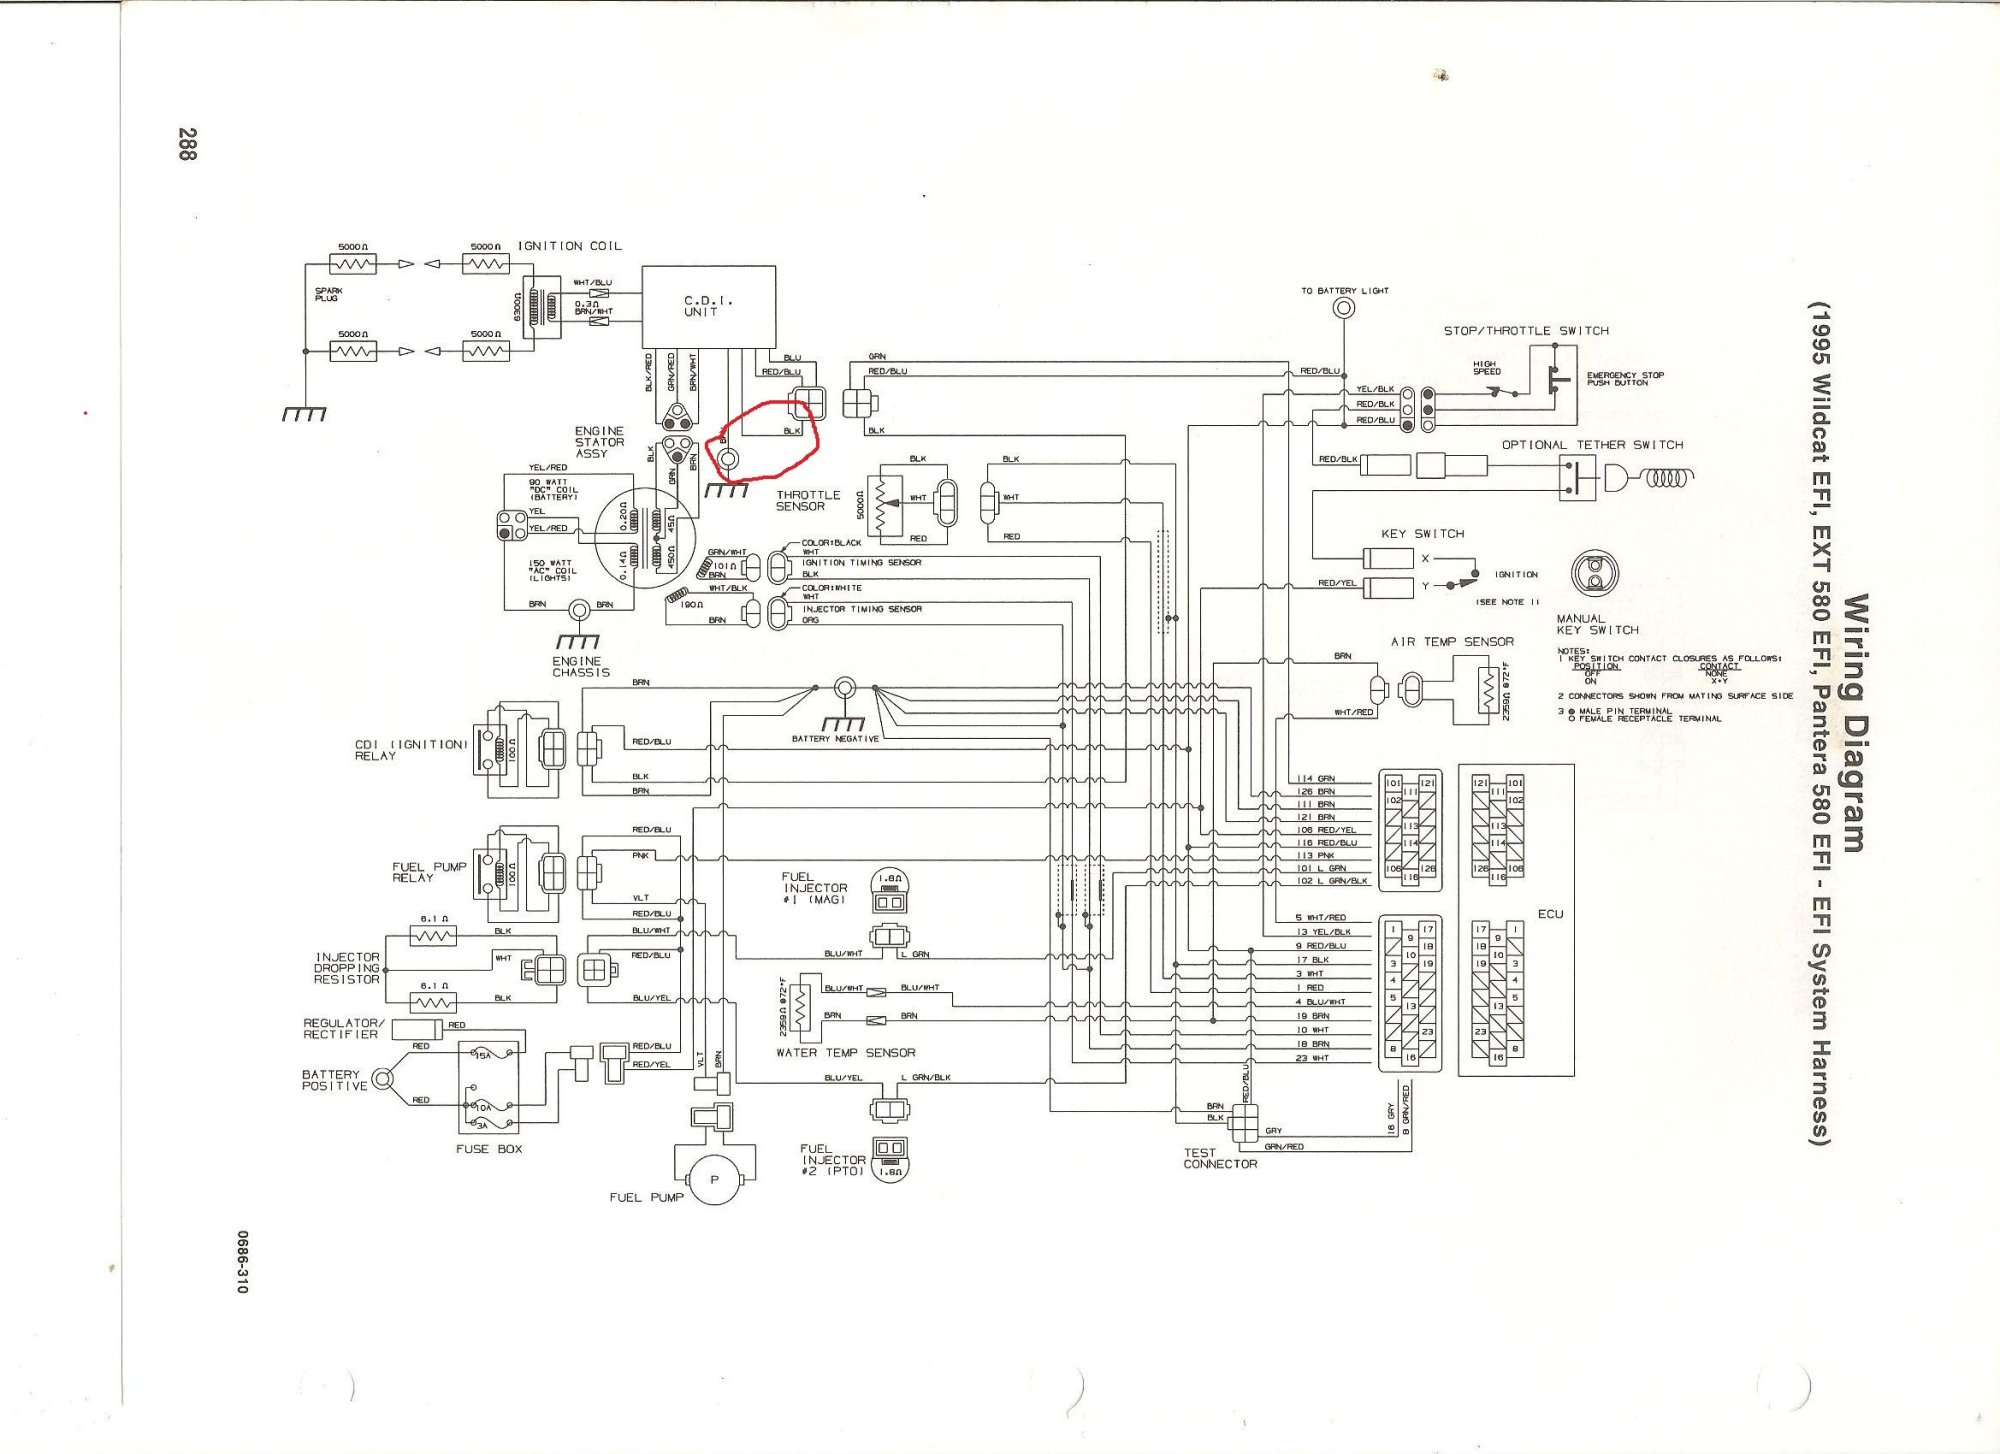 hight resolution of a wiring diagram for 1994 arctic cat prowler simple wiring schema rh 15 aspire atlantis de 2004 arctic cat 400 wiring diagram arctic cat 400 4x4 wiring